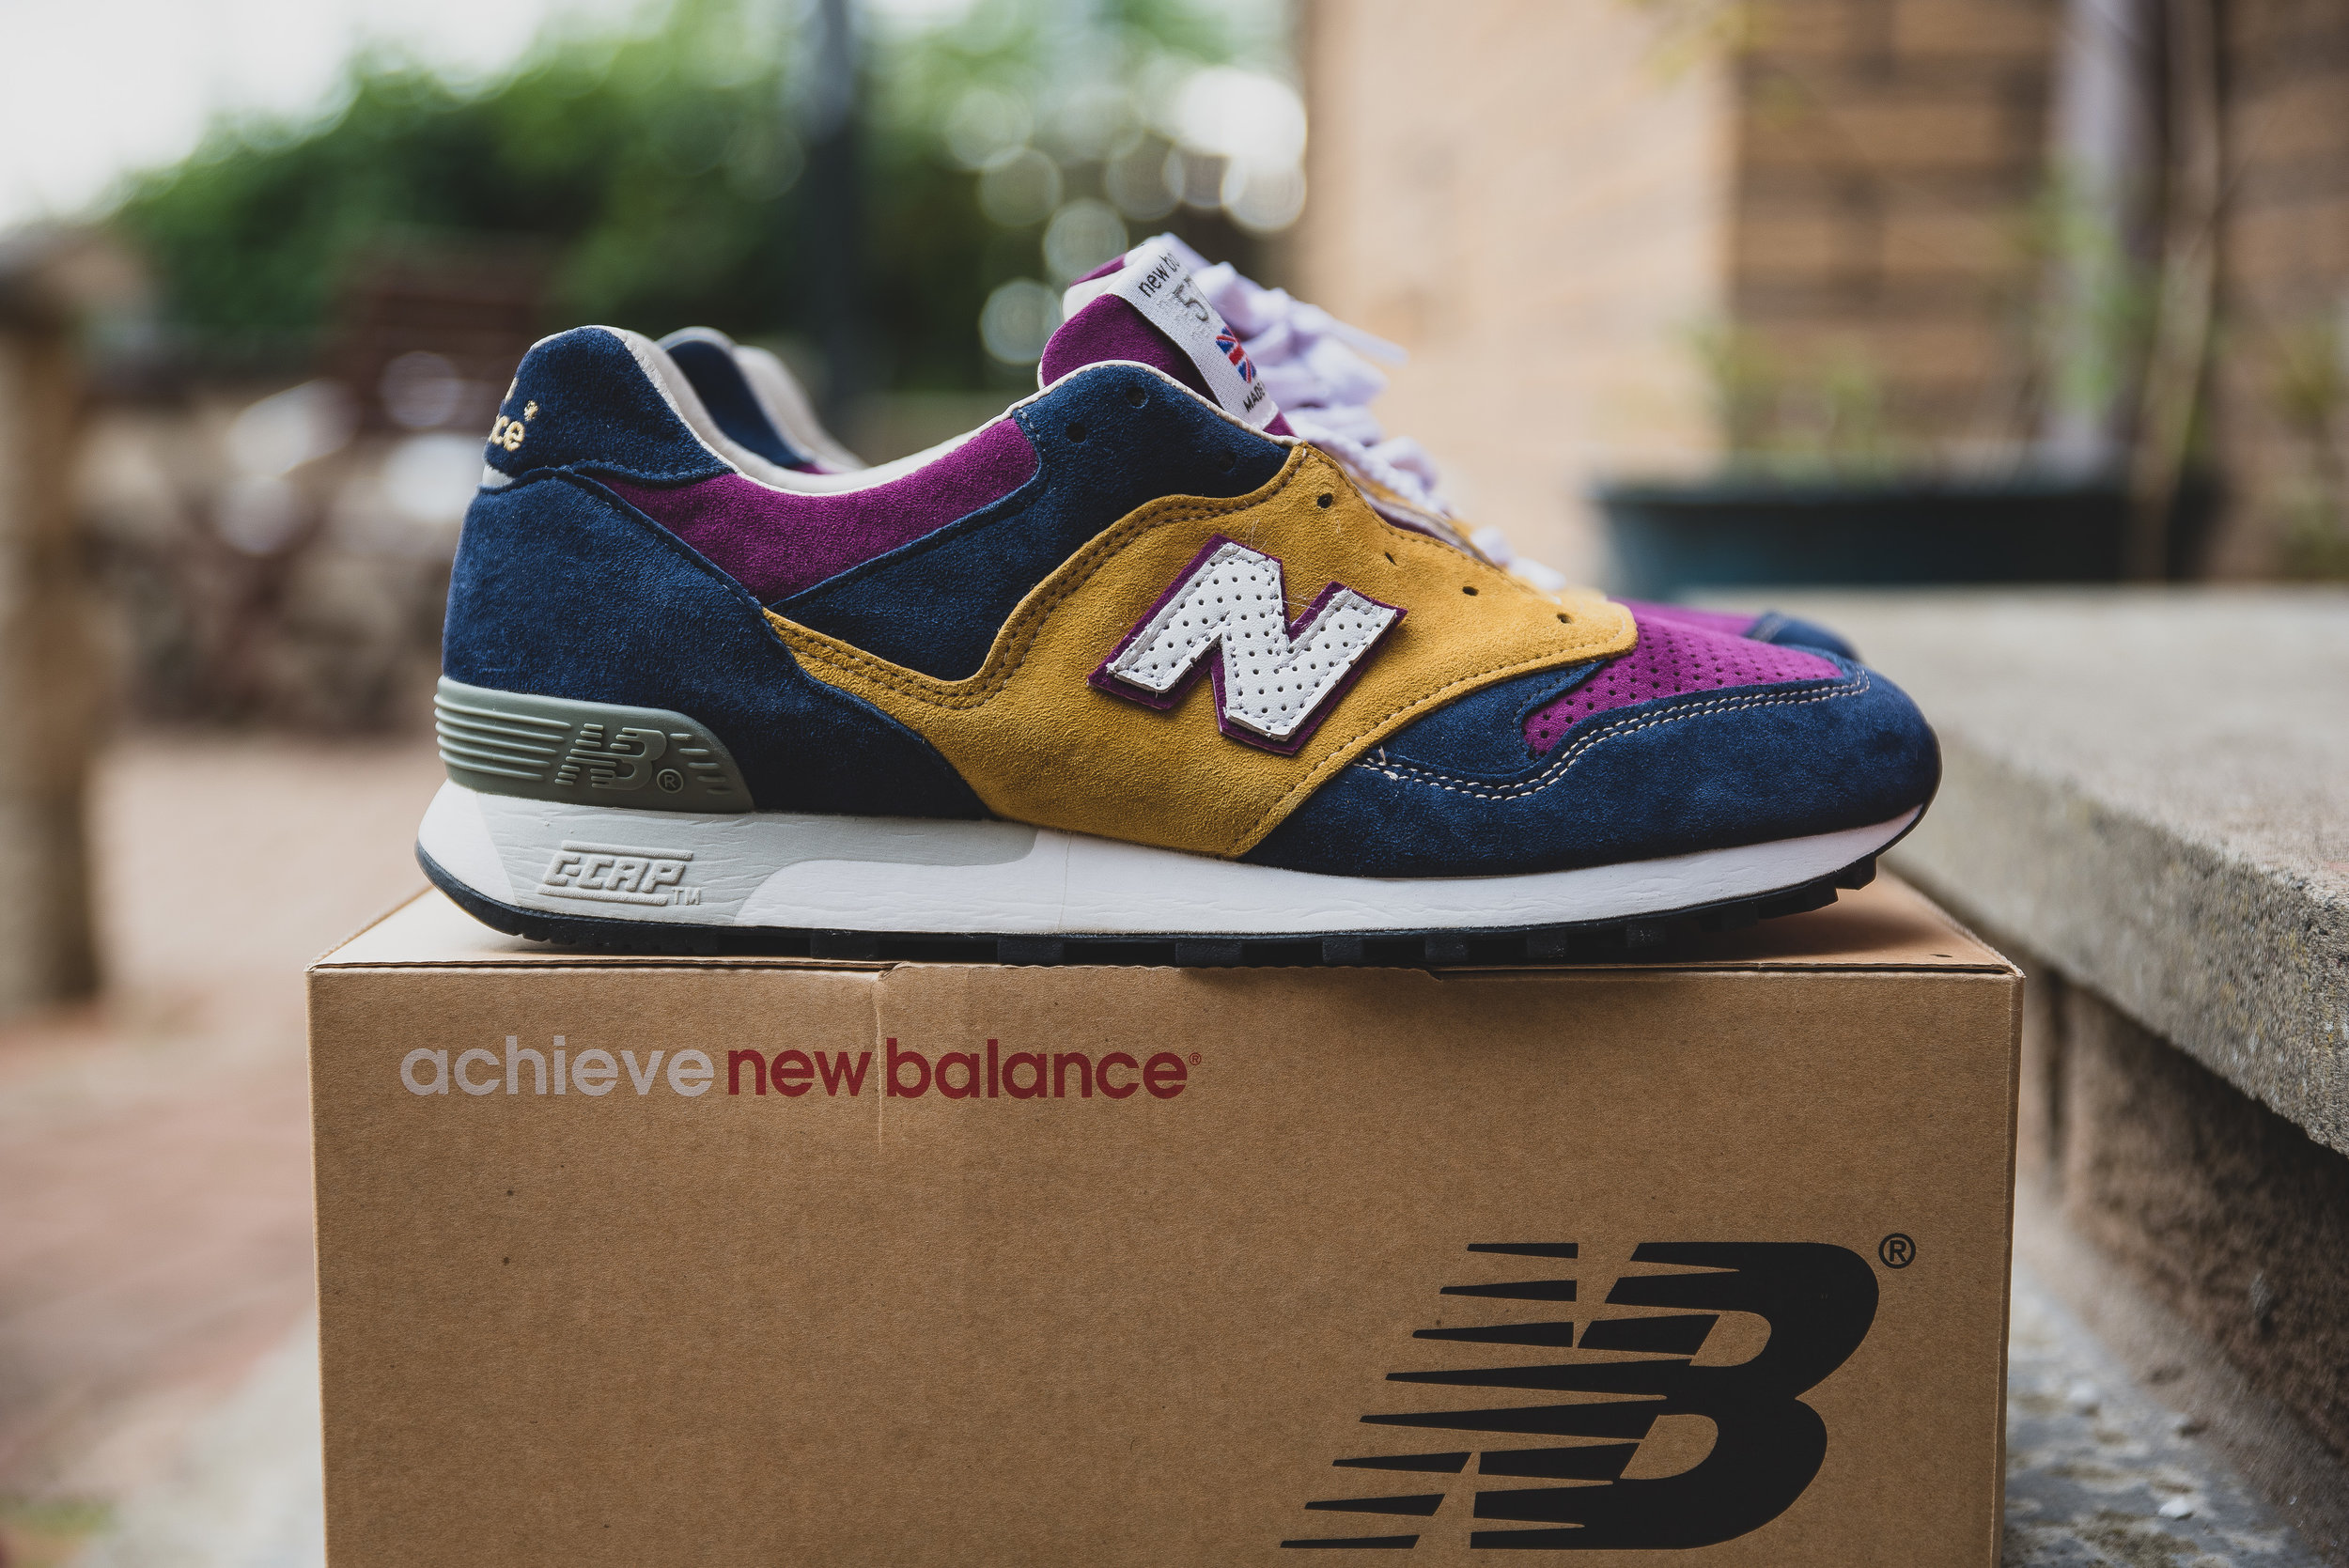 huge discount 125dd 34048 New Balance x hanon shop samples — Thomas Lindie